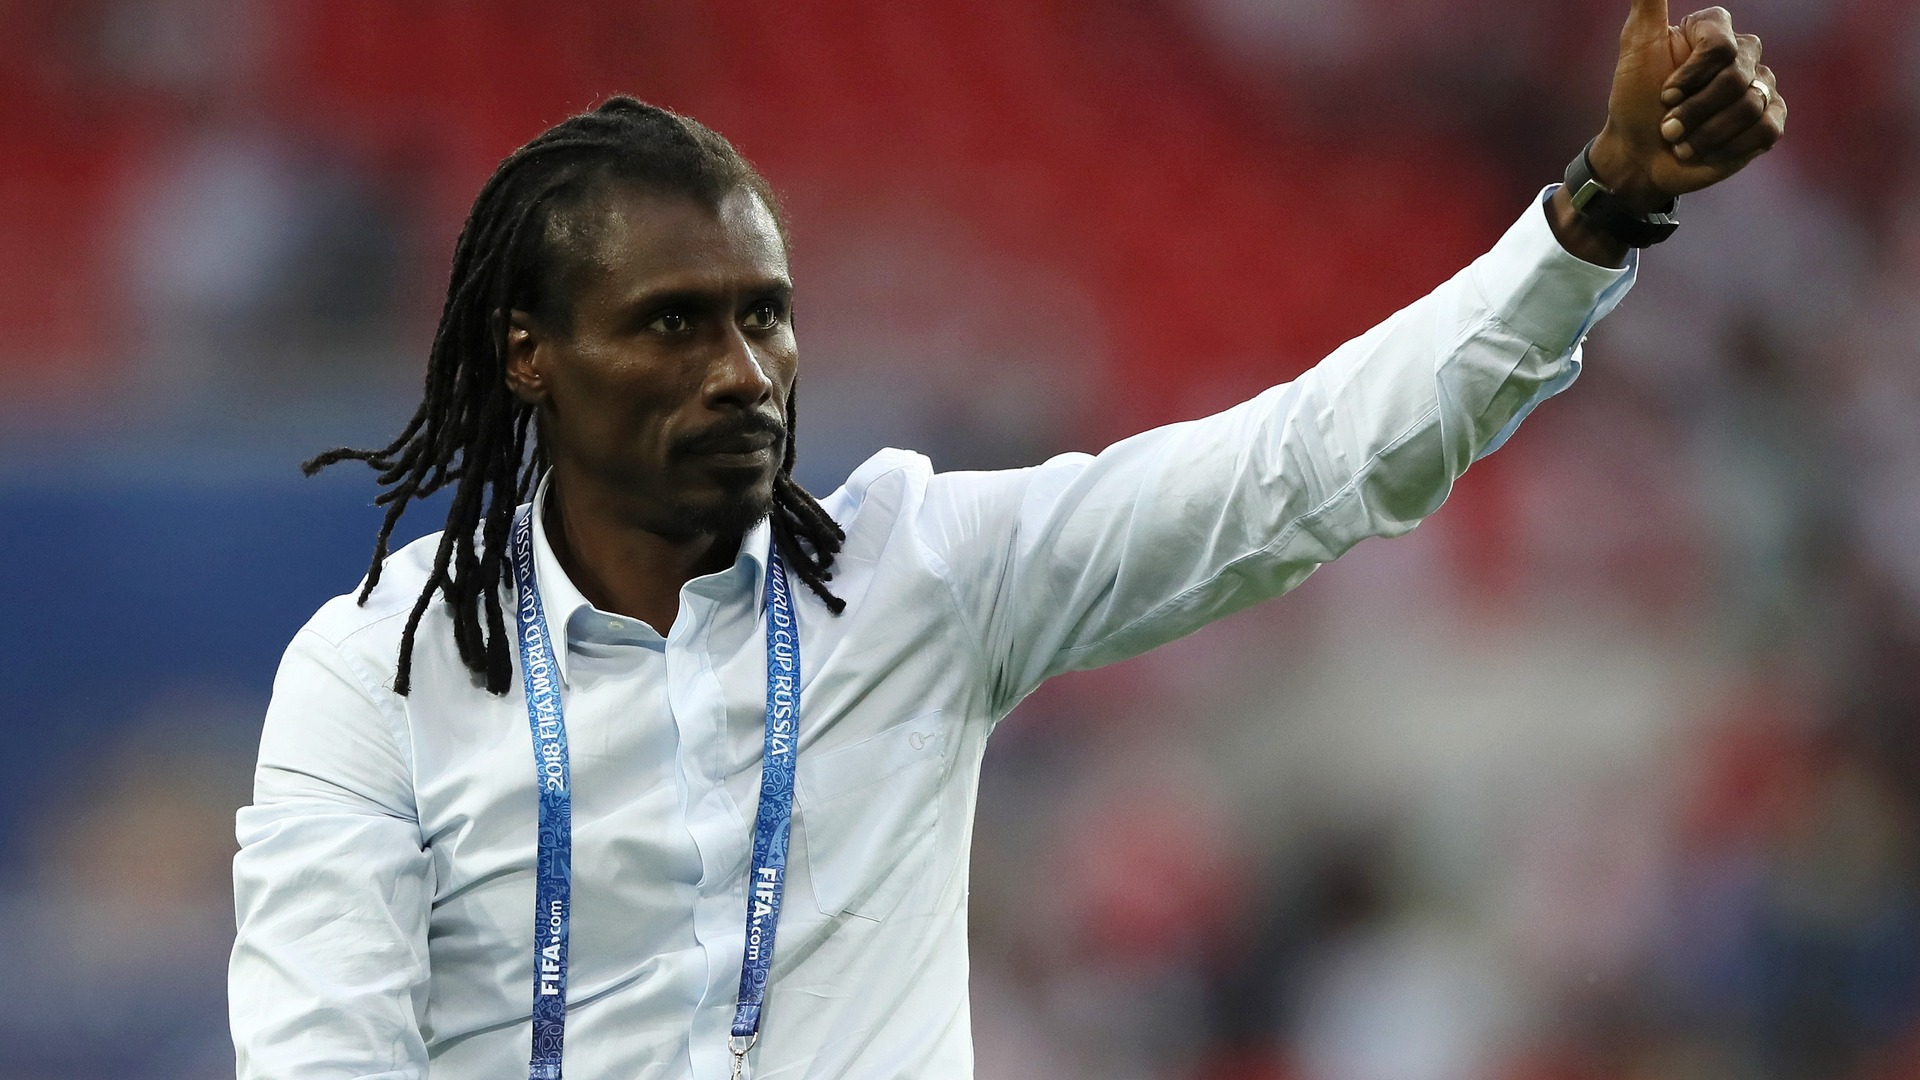 Afcon 2019: Is Senegal's wealth of options a blessing or a curse?